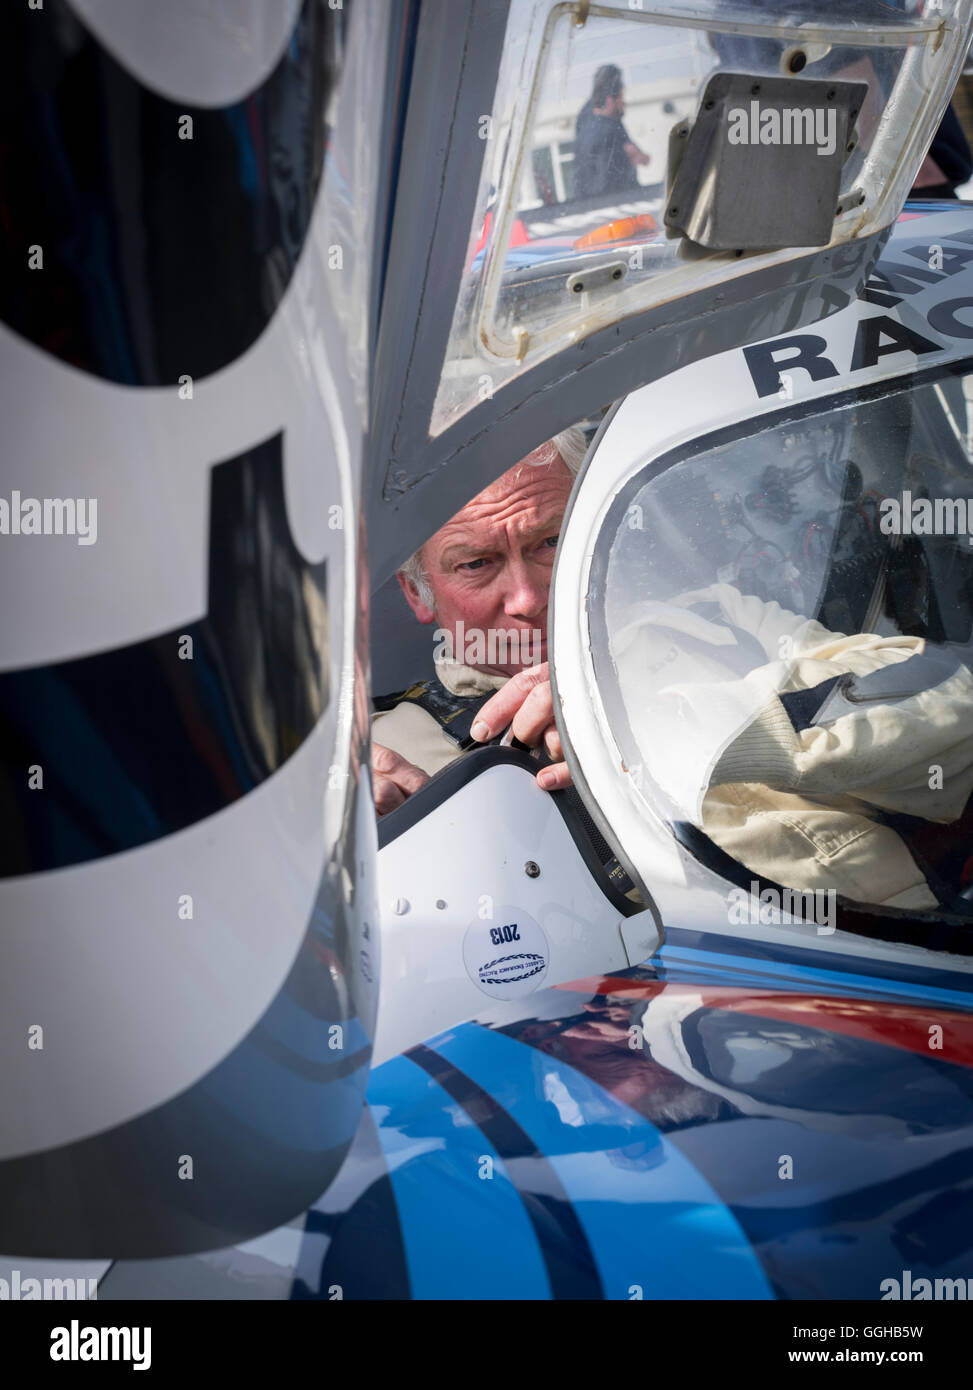 Porsche 917 LH, 72nd Members Meeting, racing, car racing, classic car, Chichester, Sussex, United Kingdom, Great - Stock Image